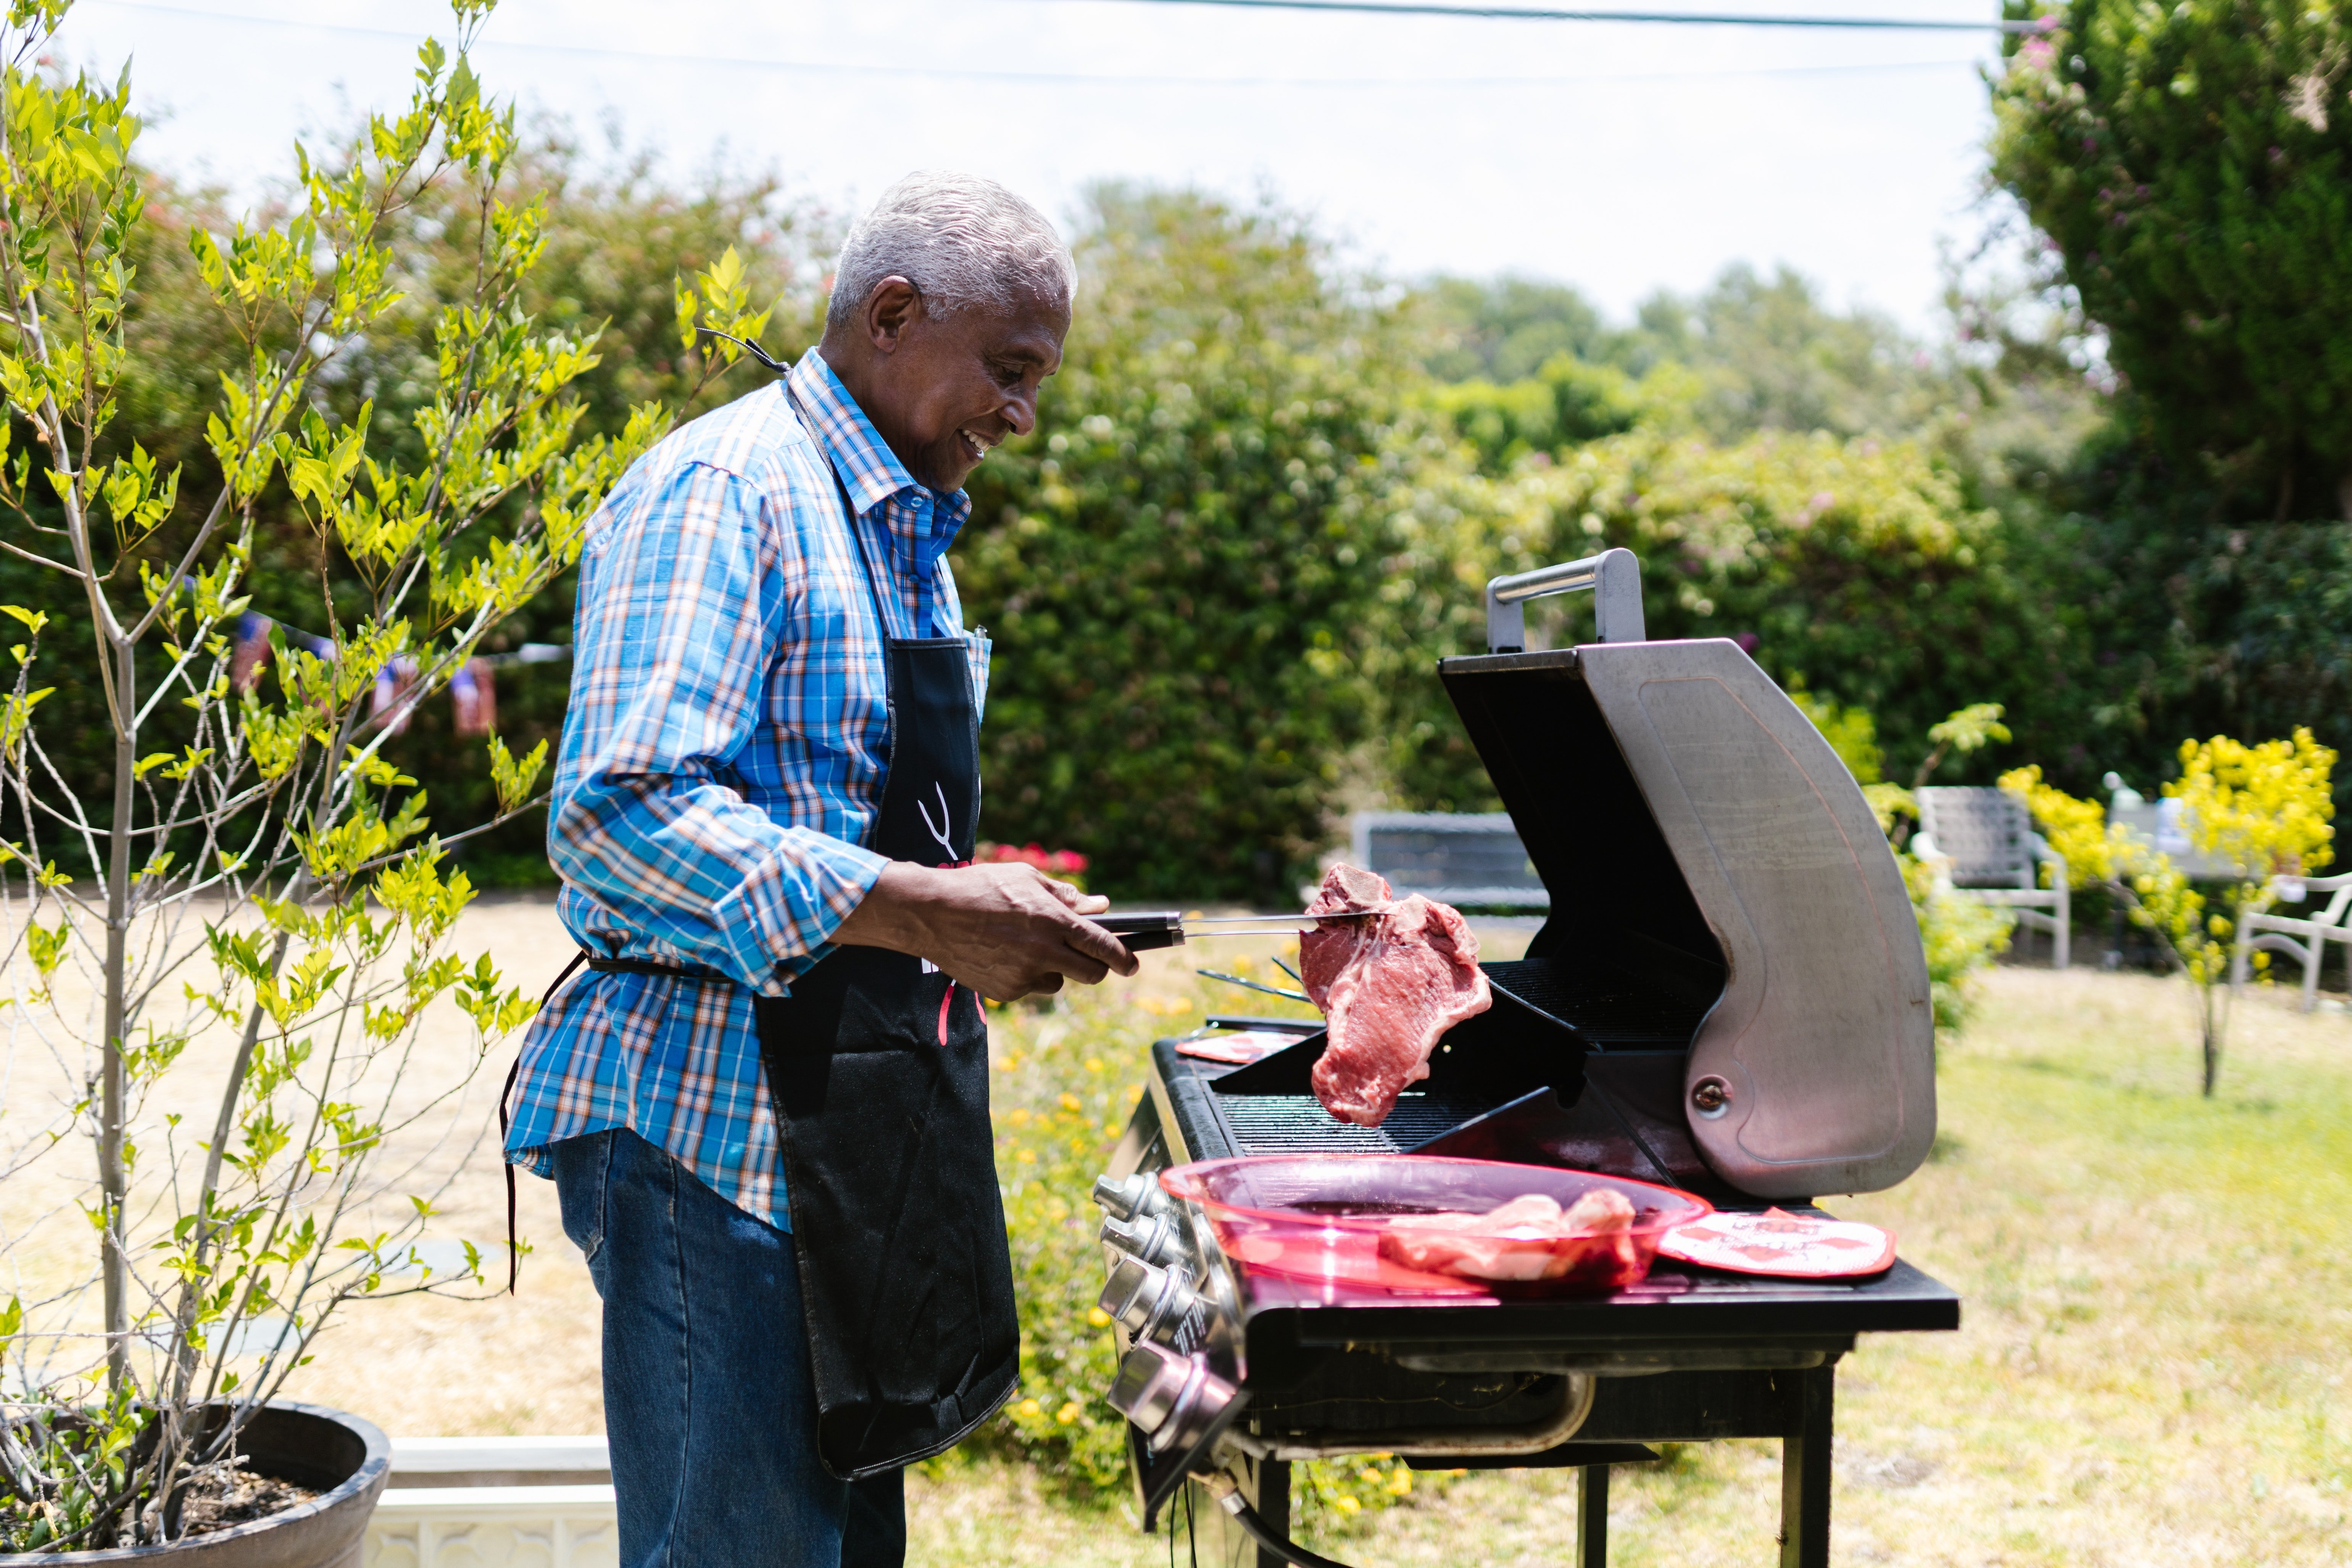 A happy man grilling meat | Photo: Pexels